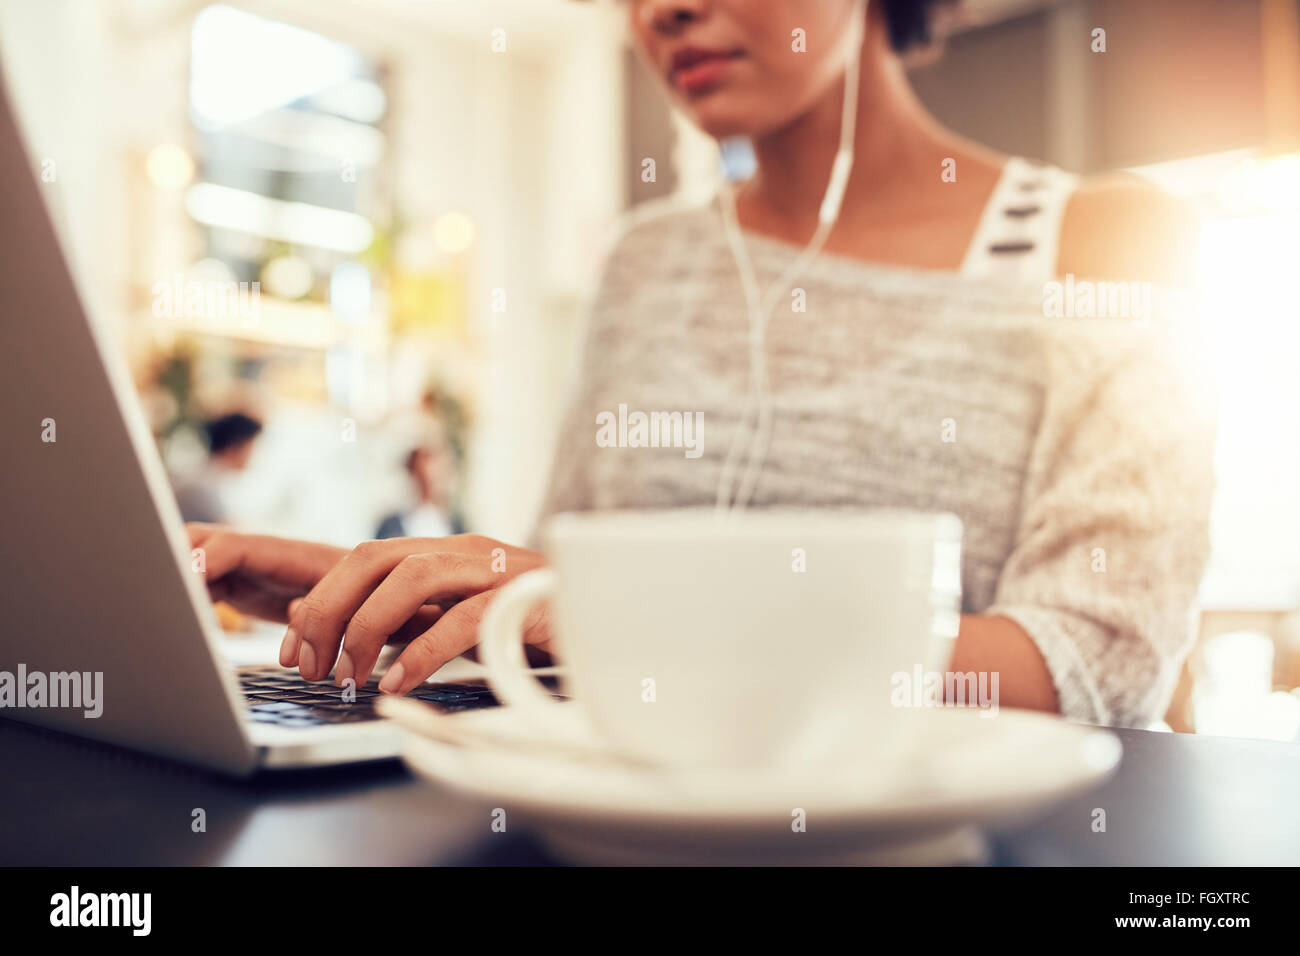 Woman sitting at a coffee shop working on laptop, with focus on hands typing on keyboard. - Stock Image